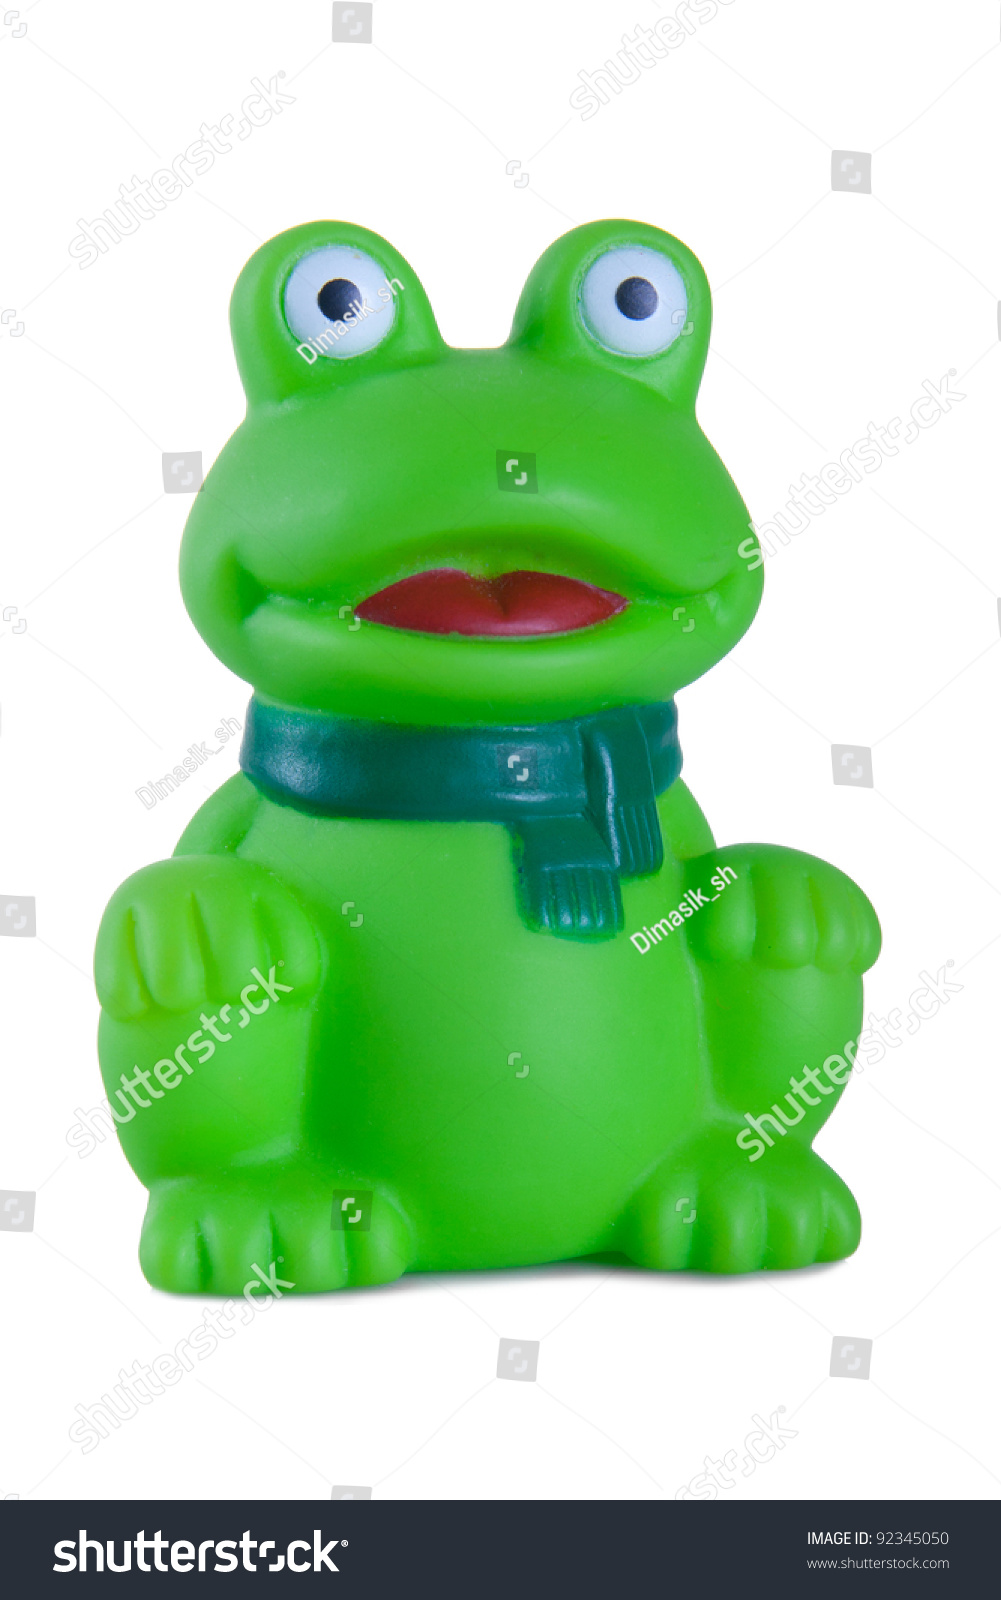 Rubber Bath Toys Green Frog Stock Photo (Edit Now) 92345050 ...